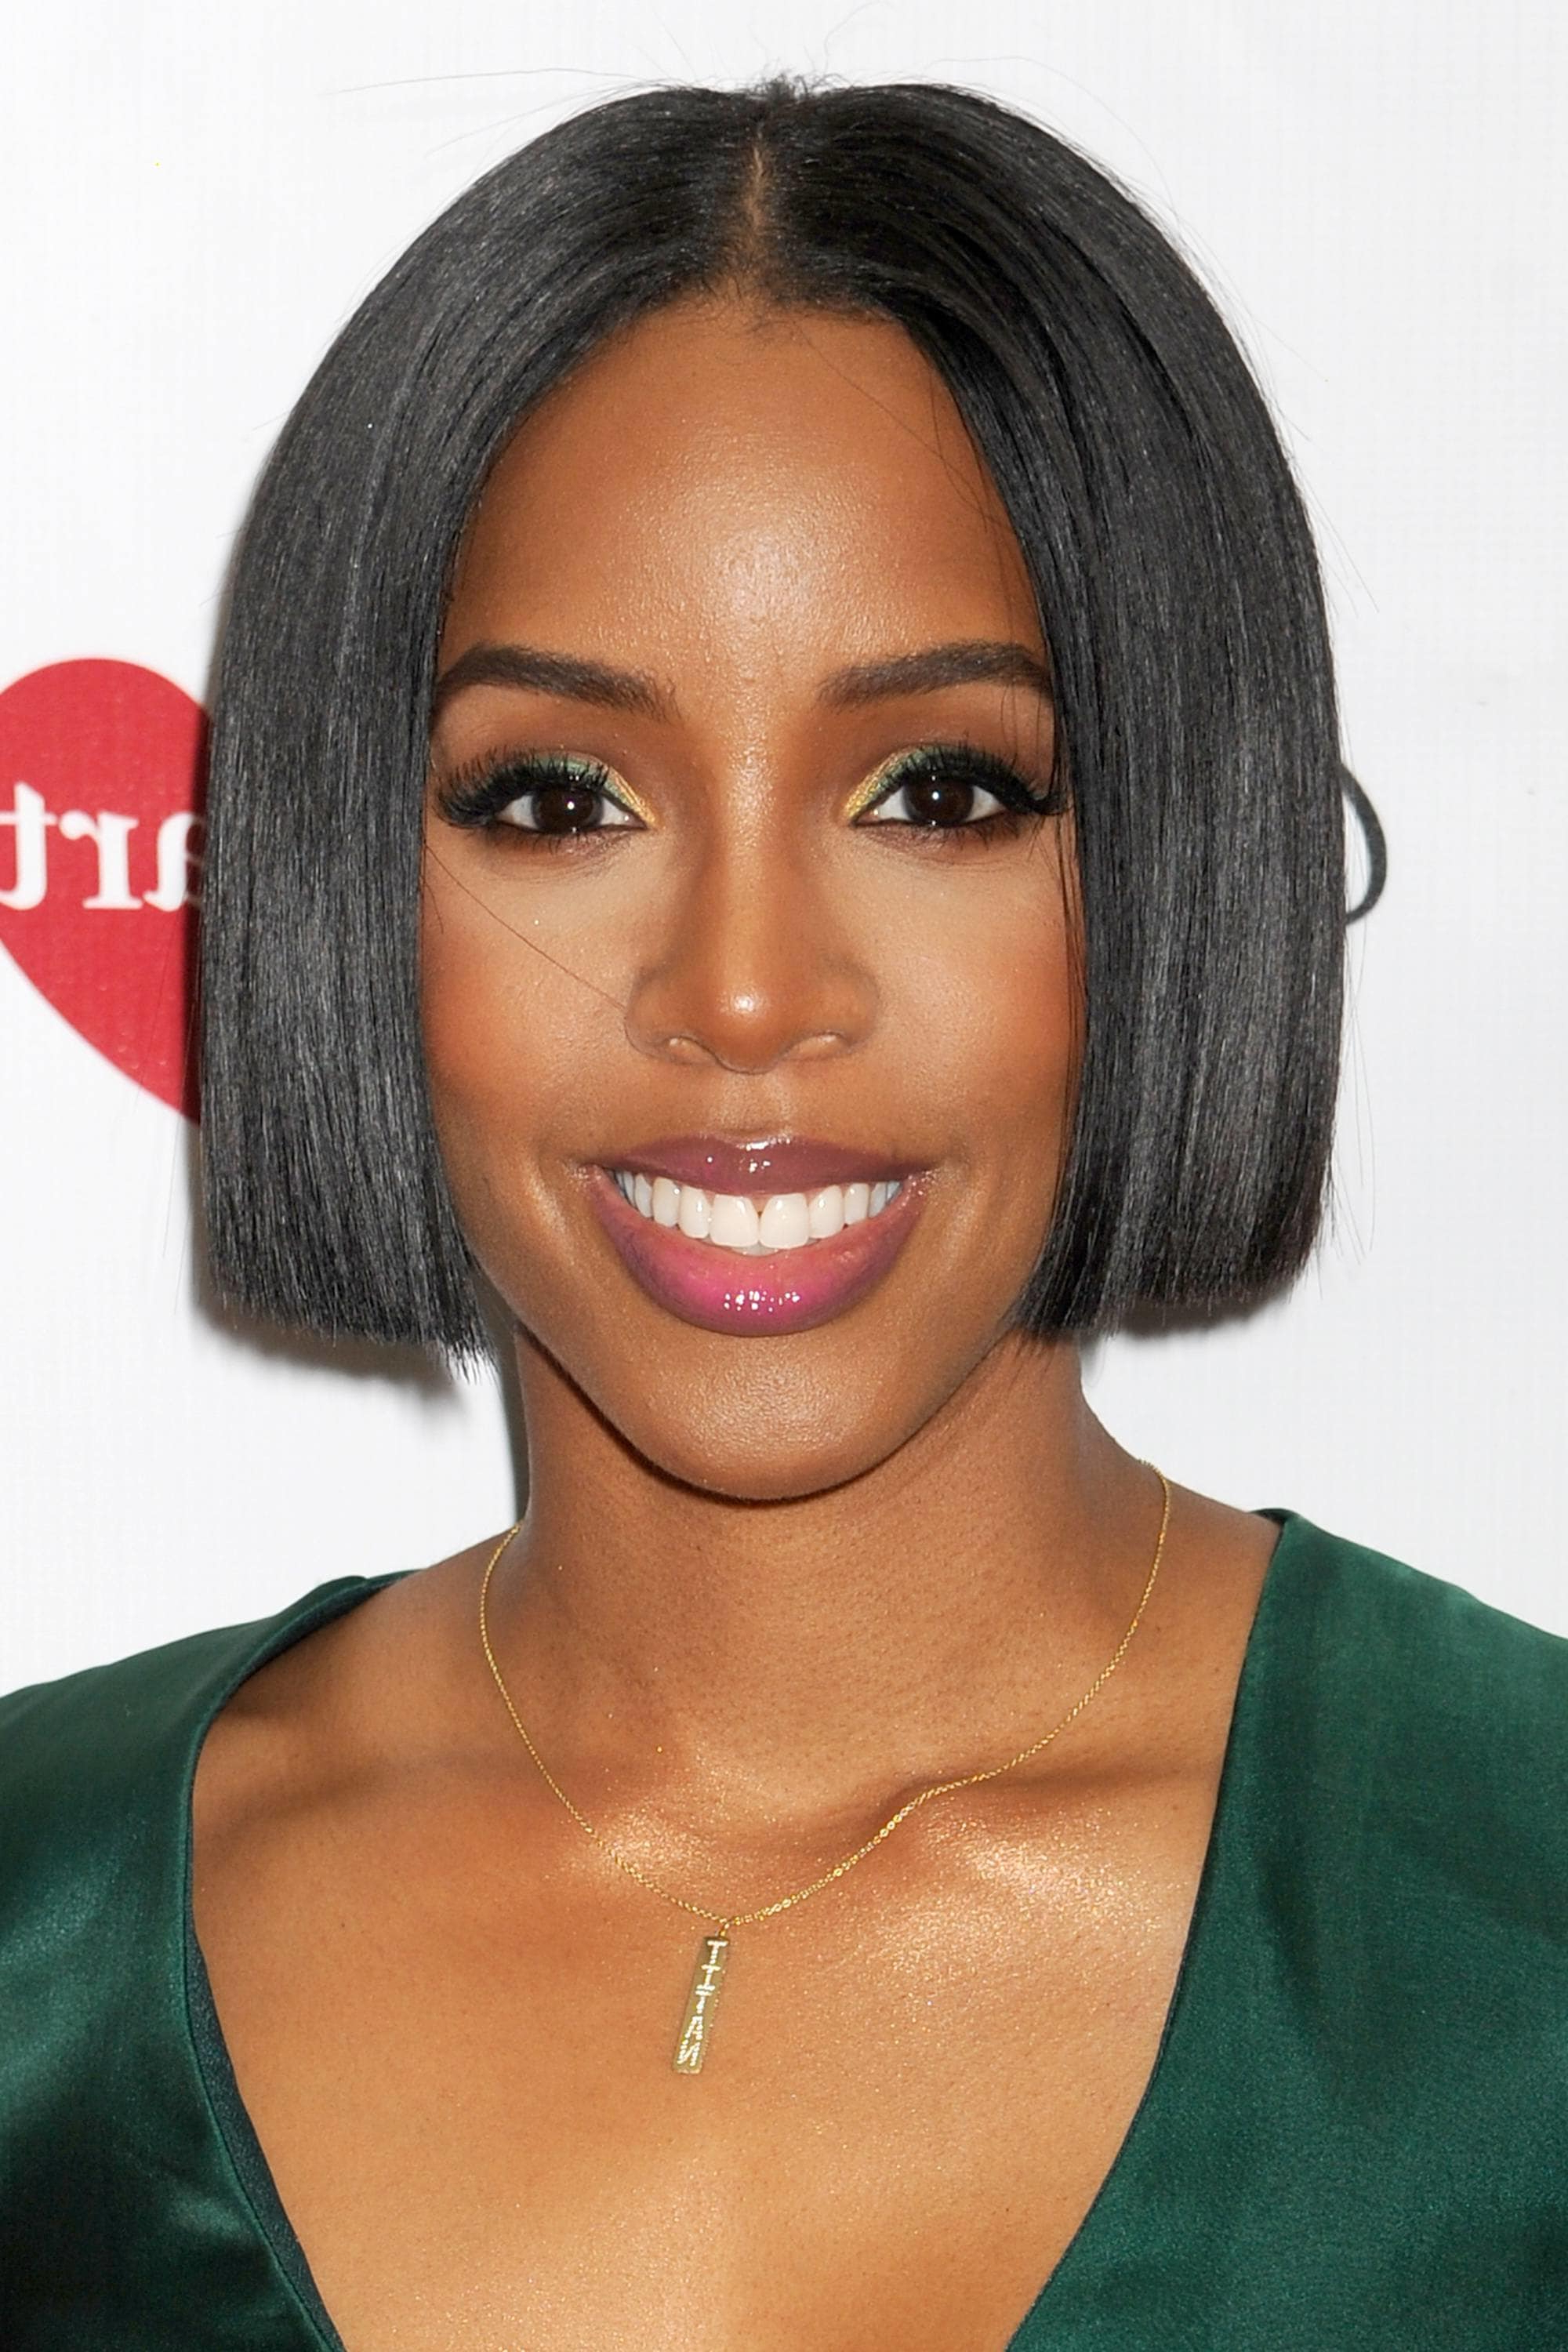 Black Bob Hairstyles: 5 Looks To Try This Year | All Things Hair Uk With Black Bob Short Hairstyles (View 10 of 25)